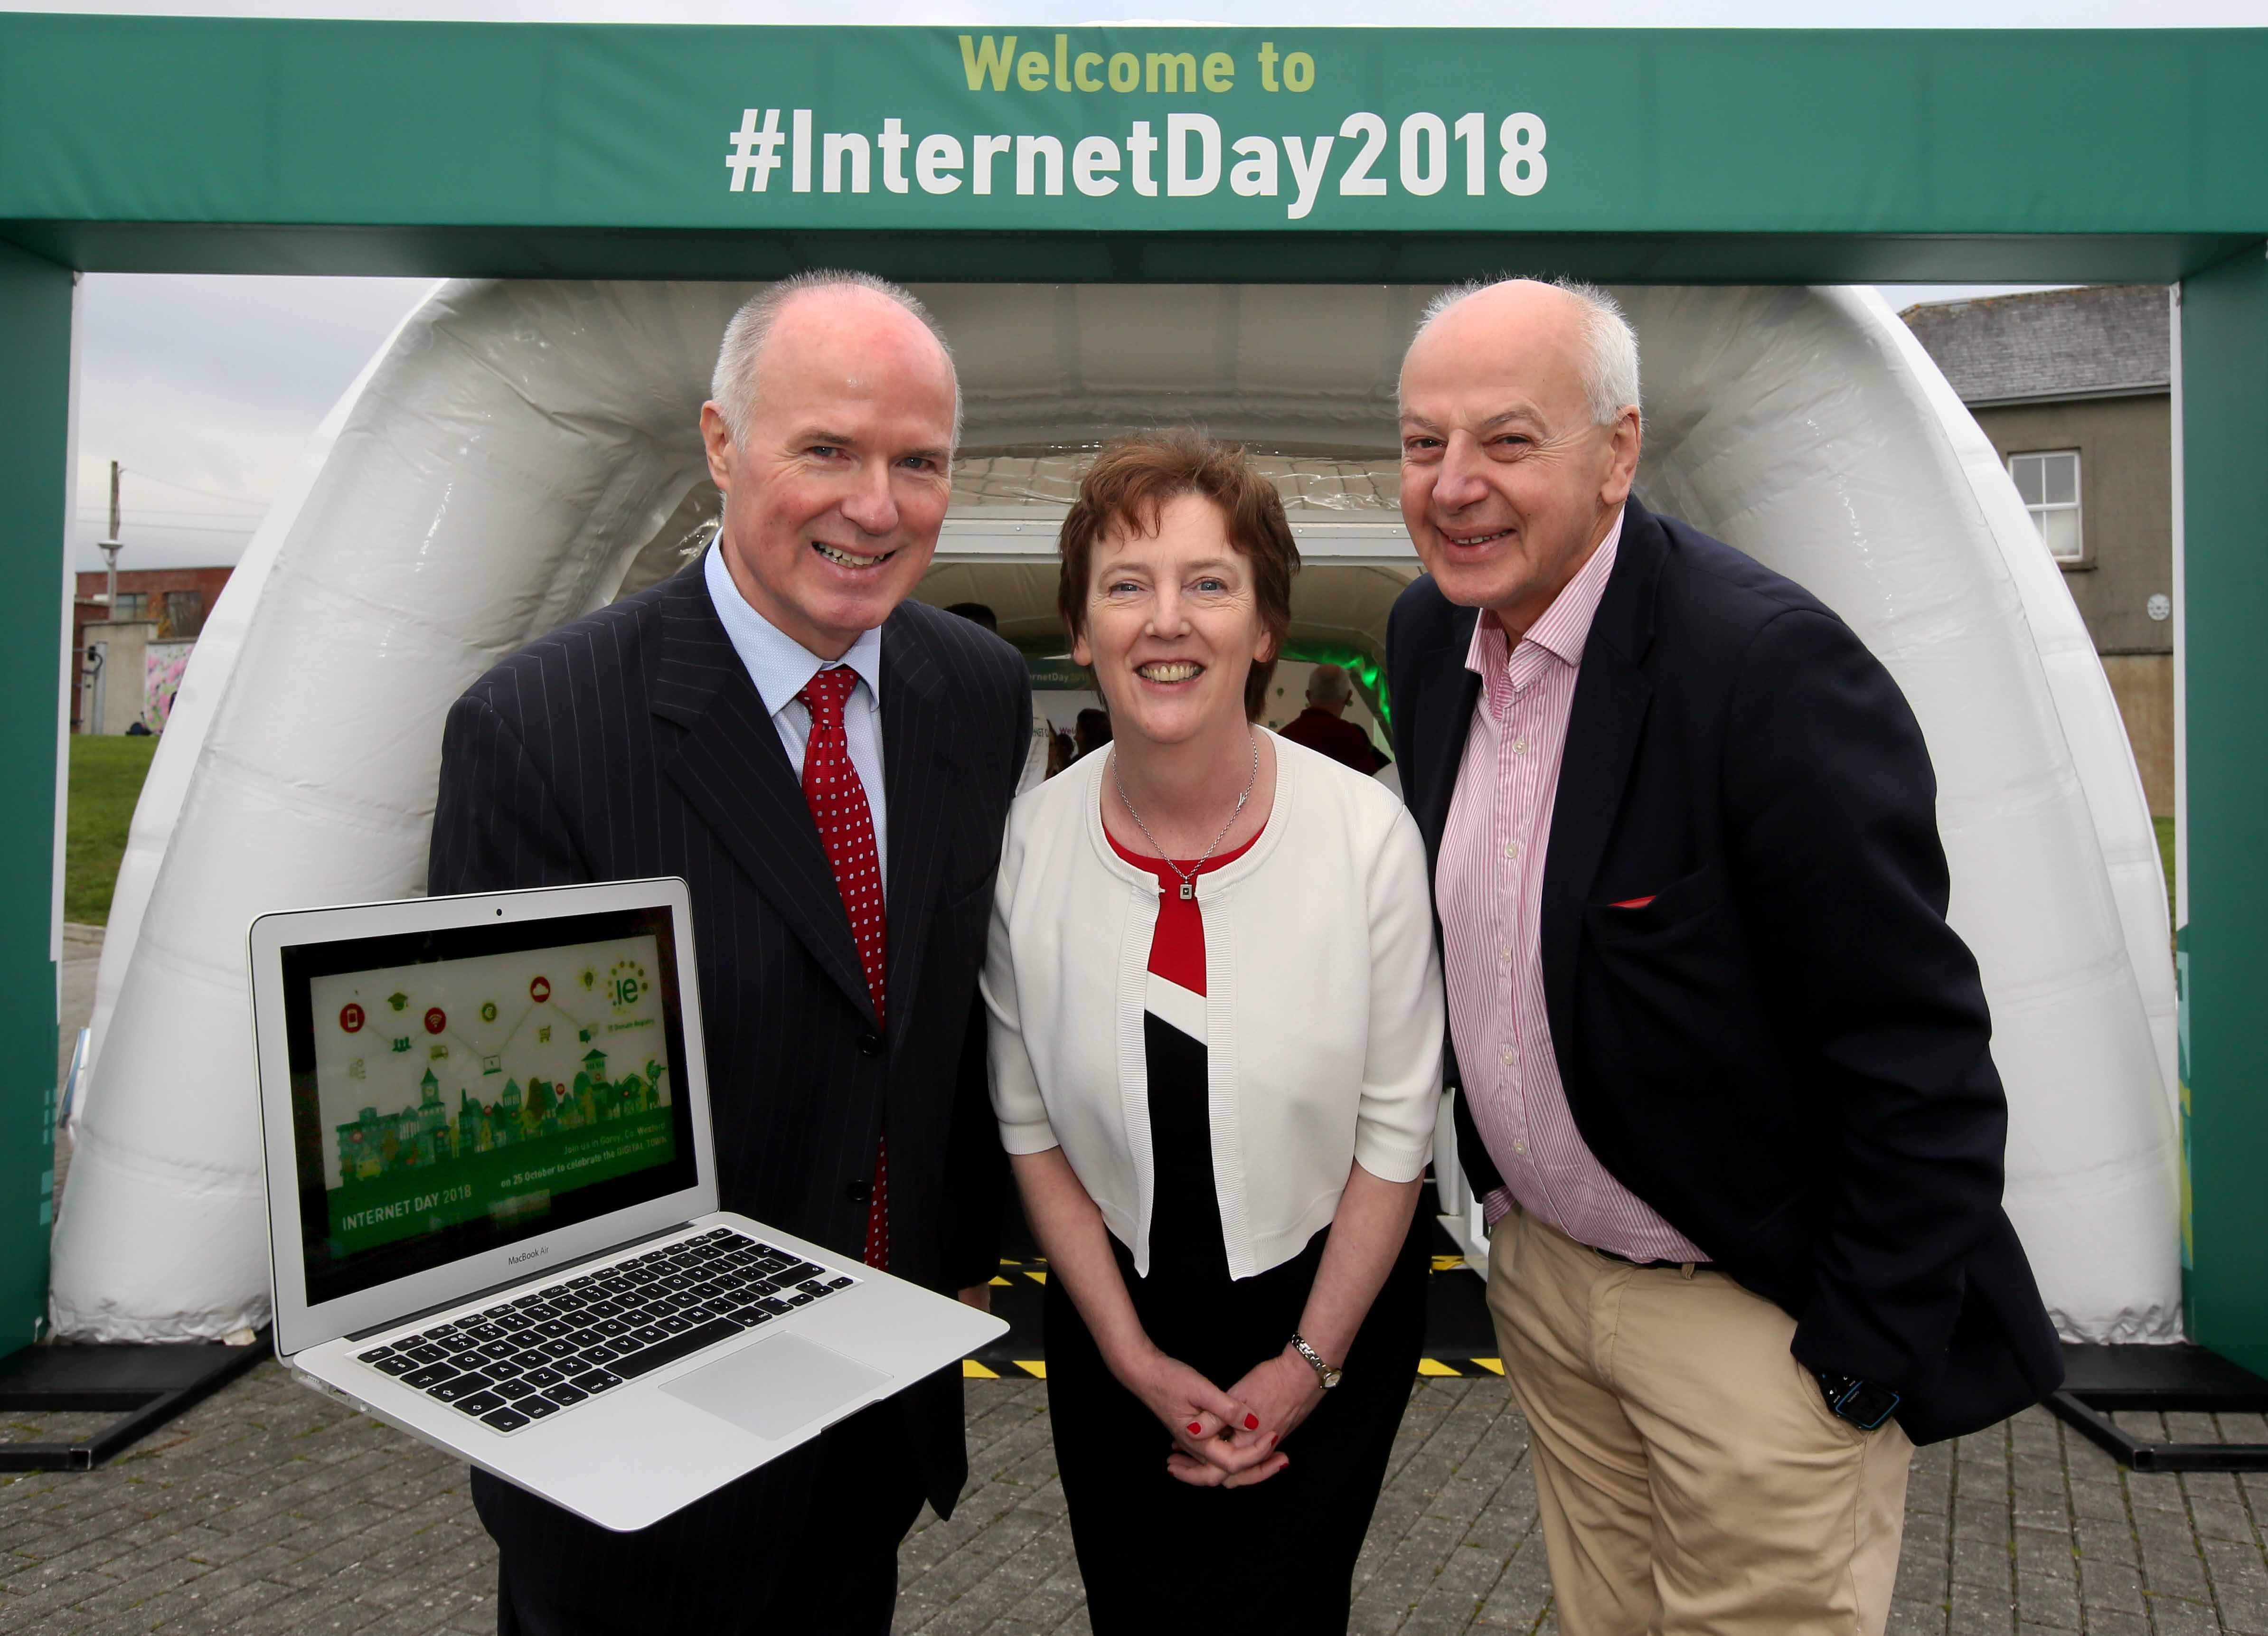 David Curtin, Oonagh McCutcheon and Bobby Kerr at Digital Town 2018 in Gorey